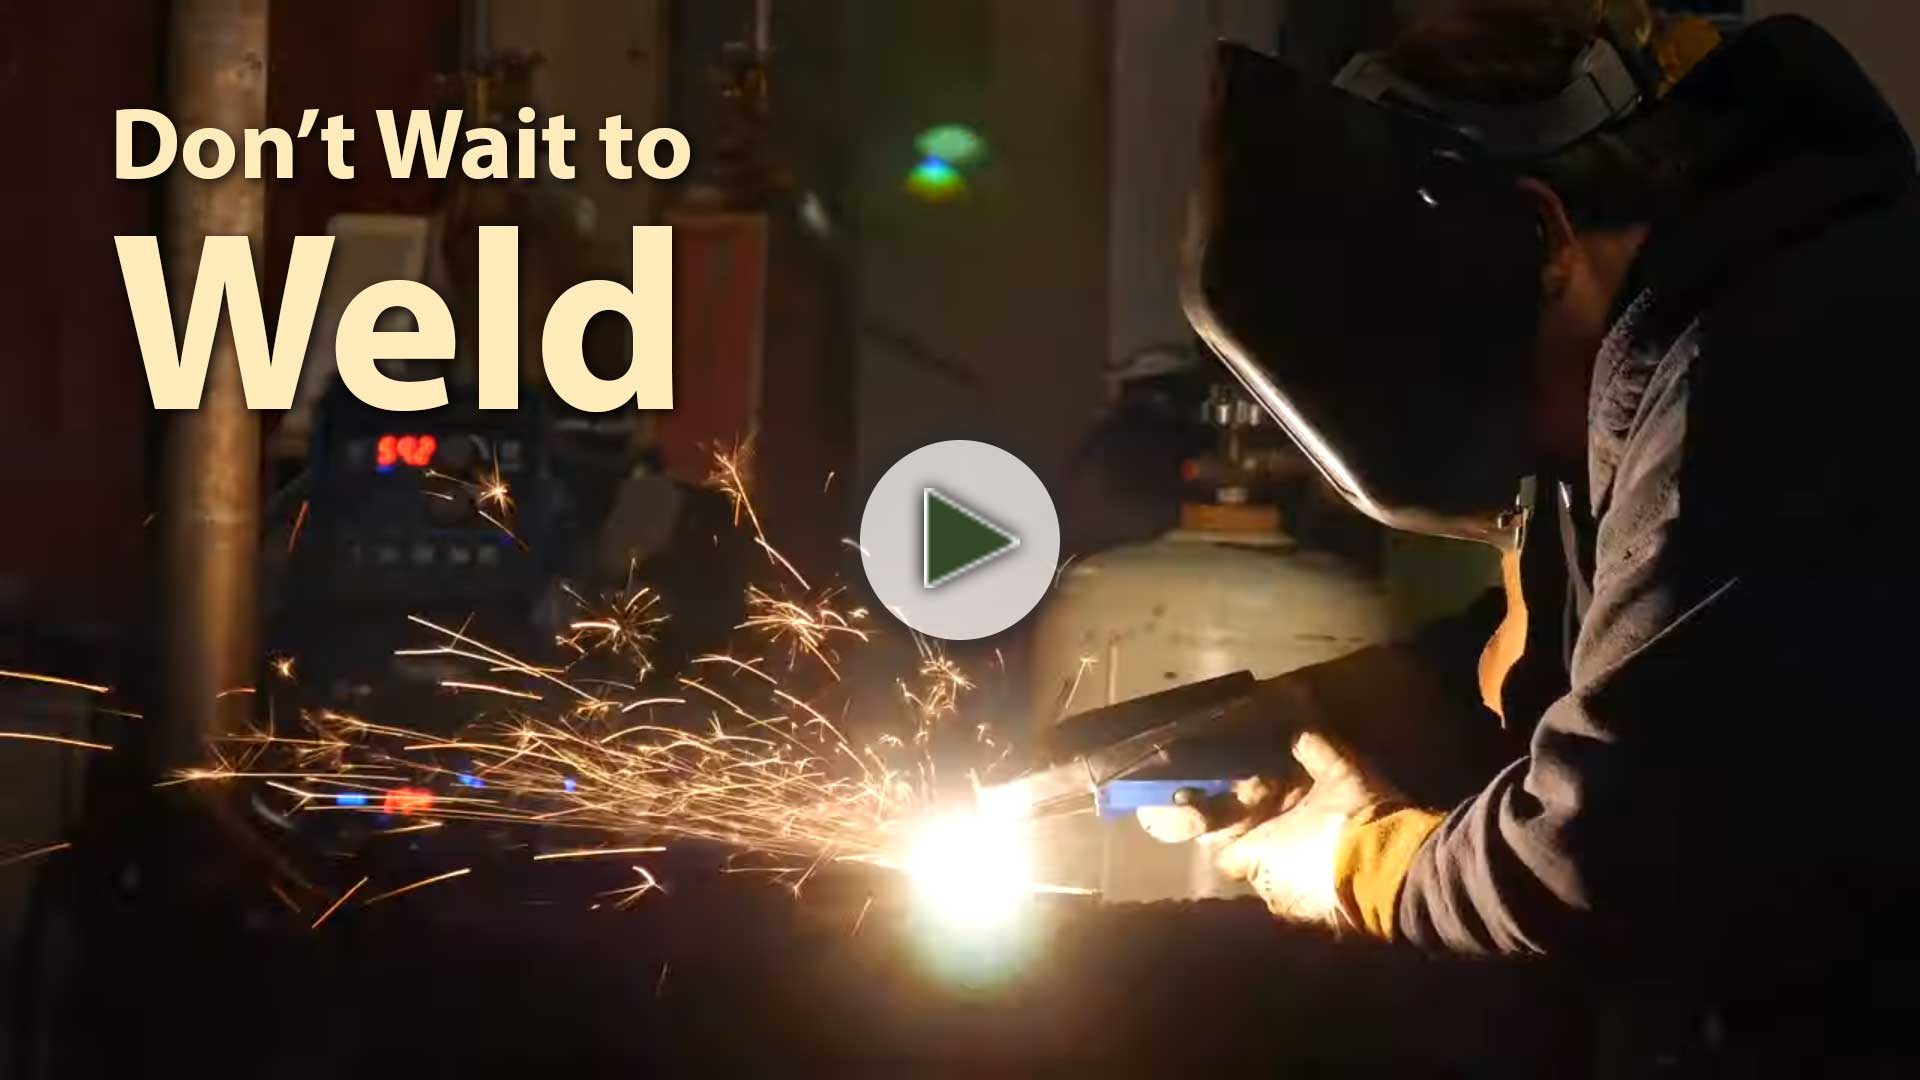 Don't Wait to Weld - video